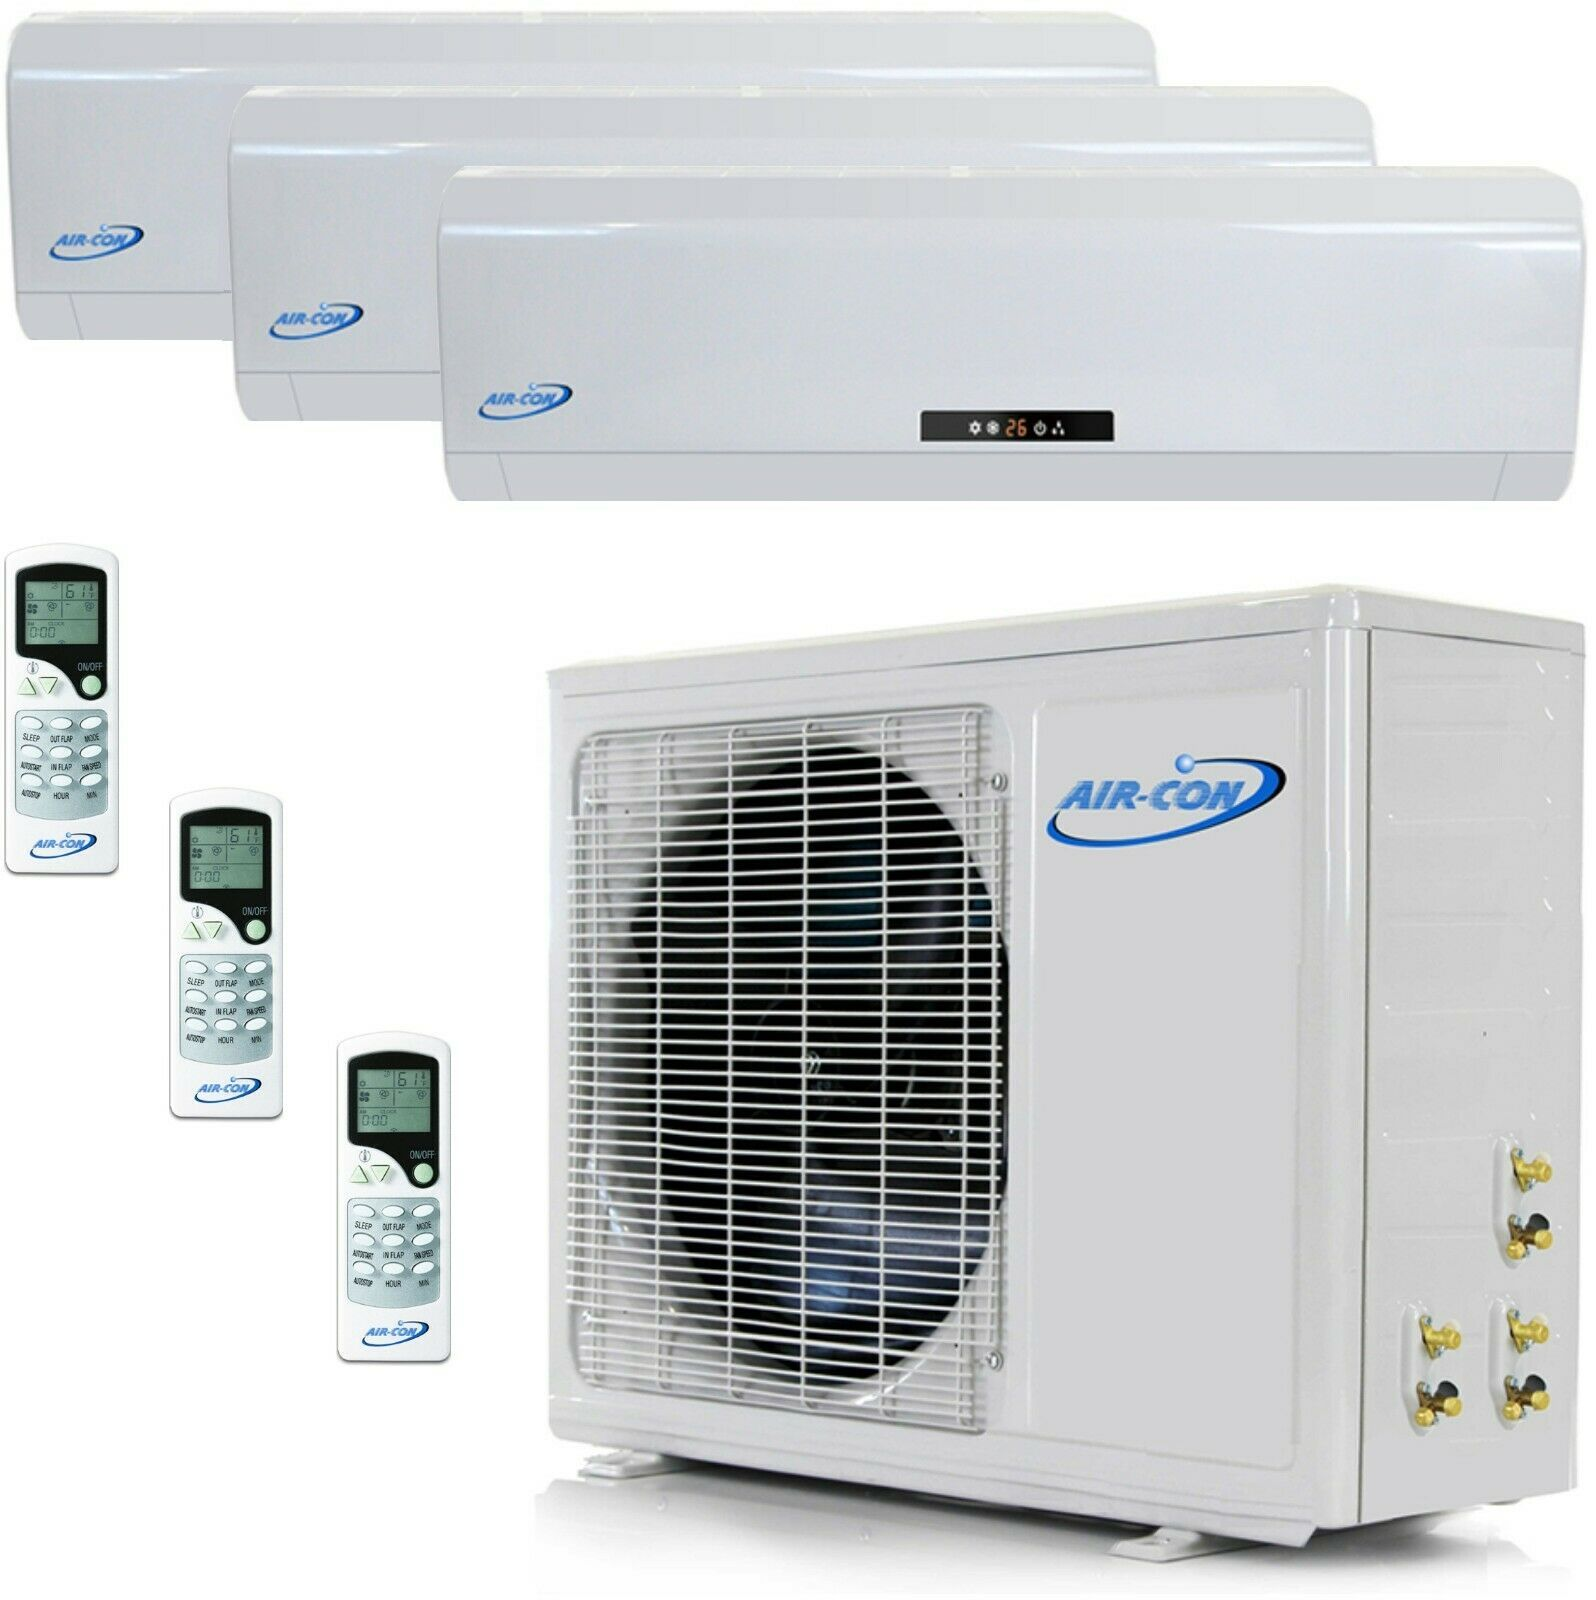 3 Zone Mini Split in 2020 Ductless air conditioner, Air